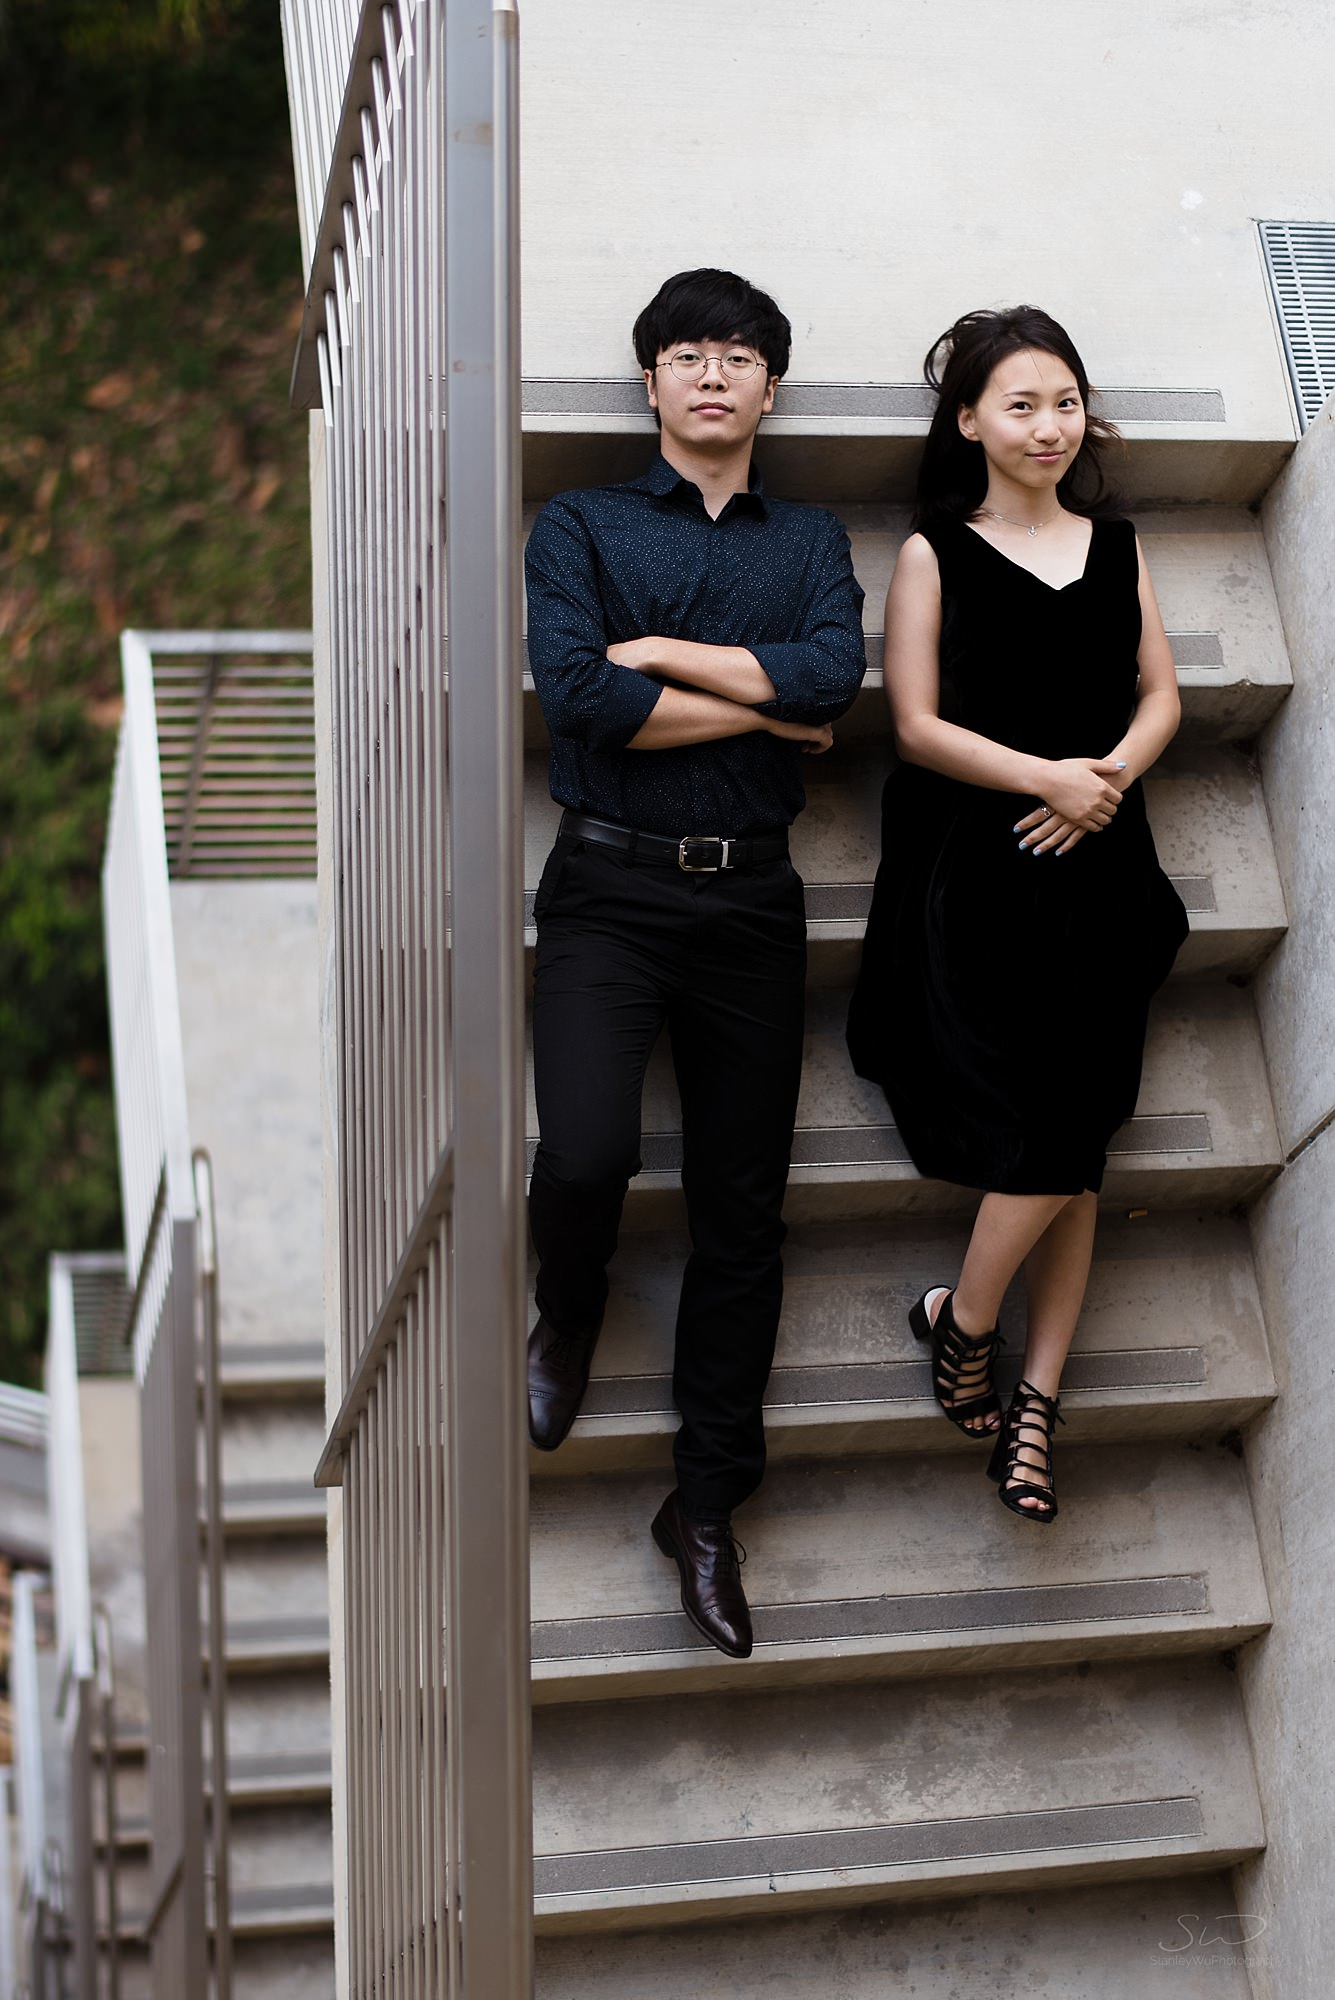 artistic graduation senior portrait shot from top down of a fashionable couple wearing black lying on stairs at ucla in los angeles